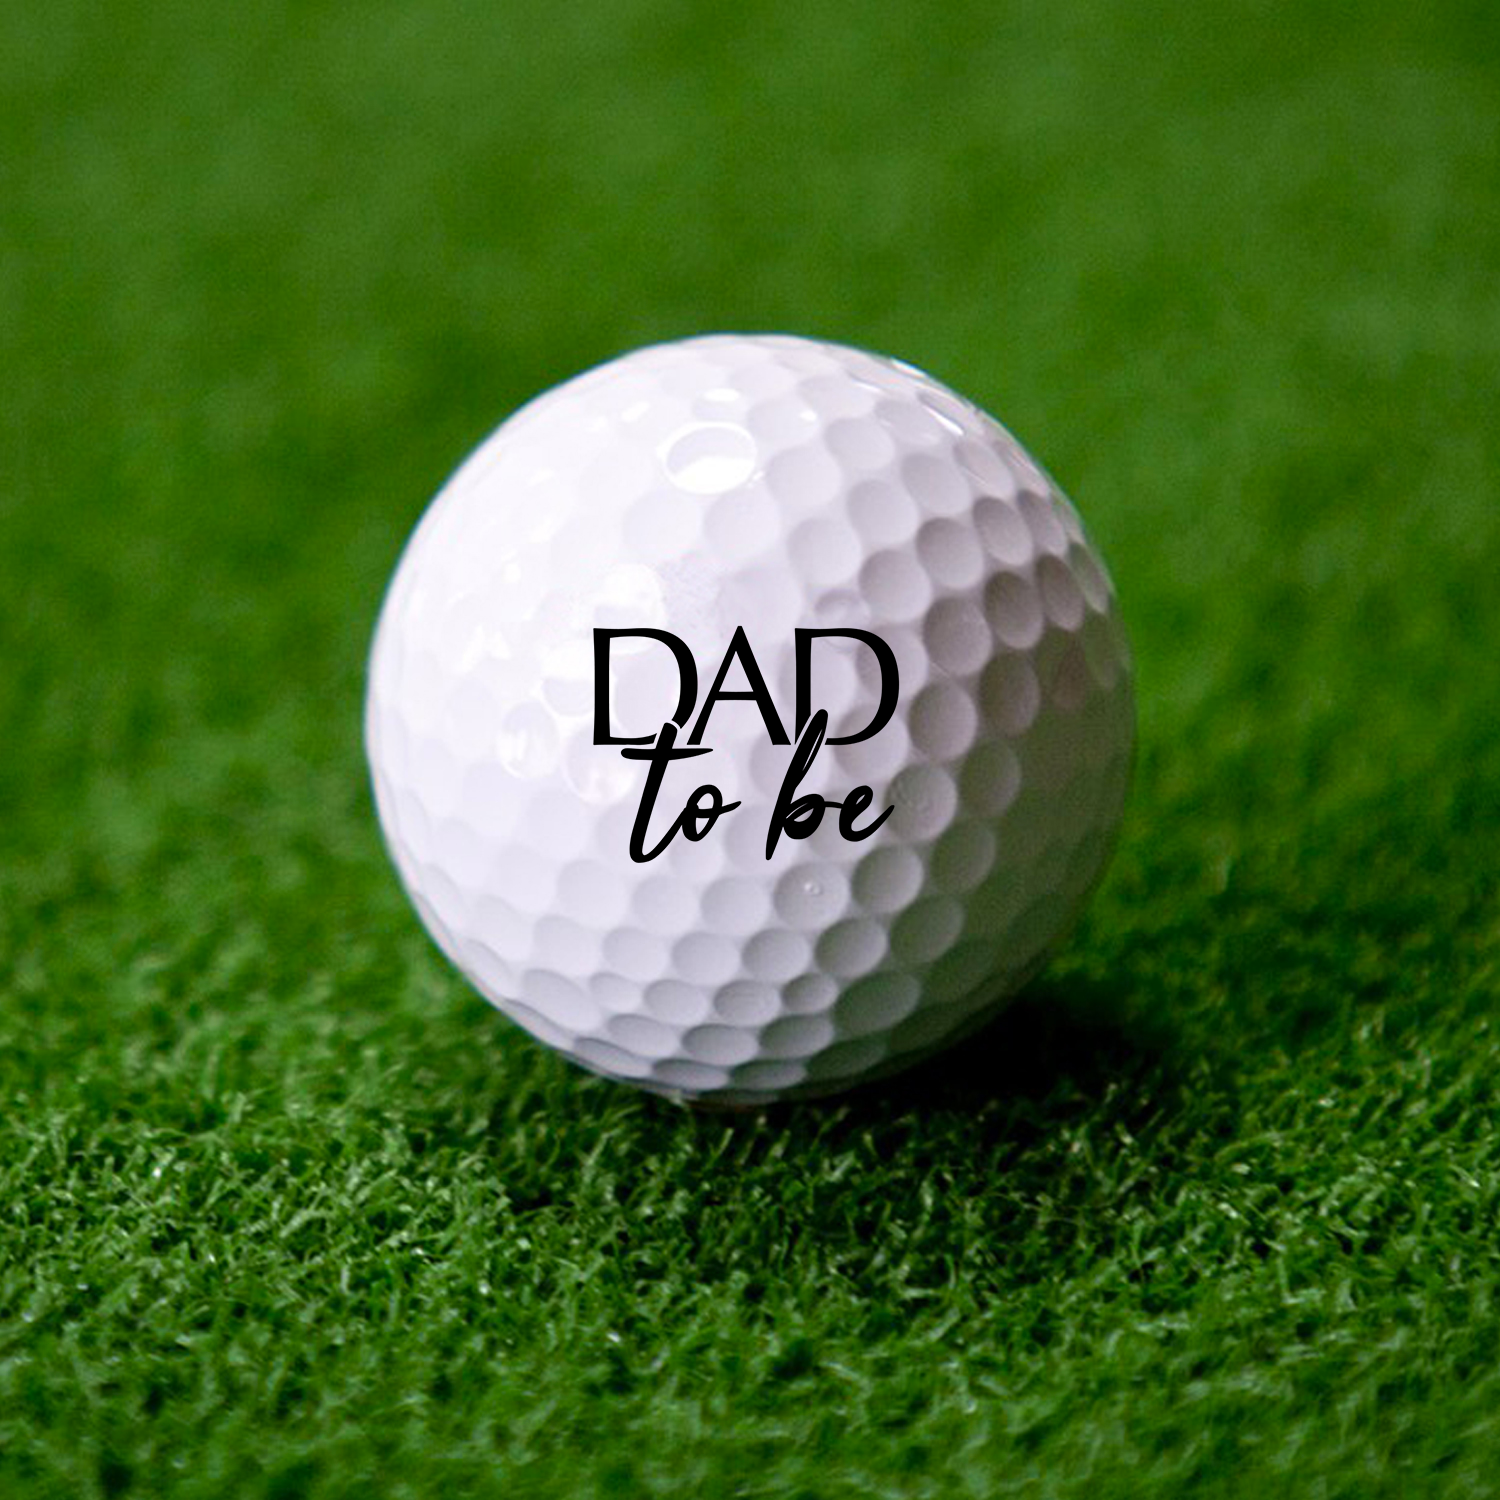 Dad to be golf ball set - New dad golfer gift